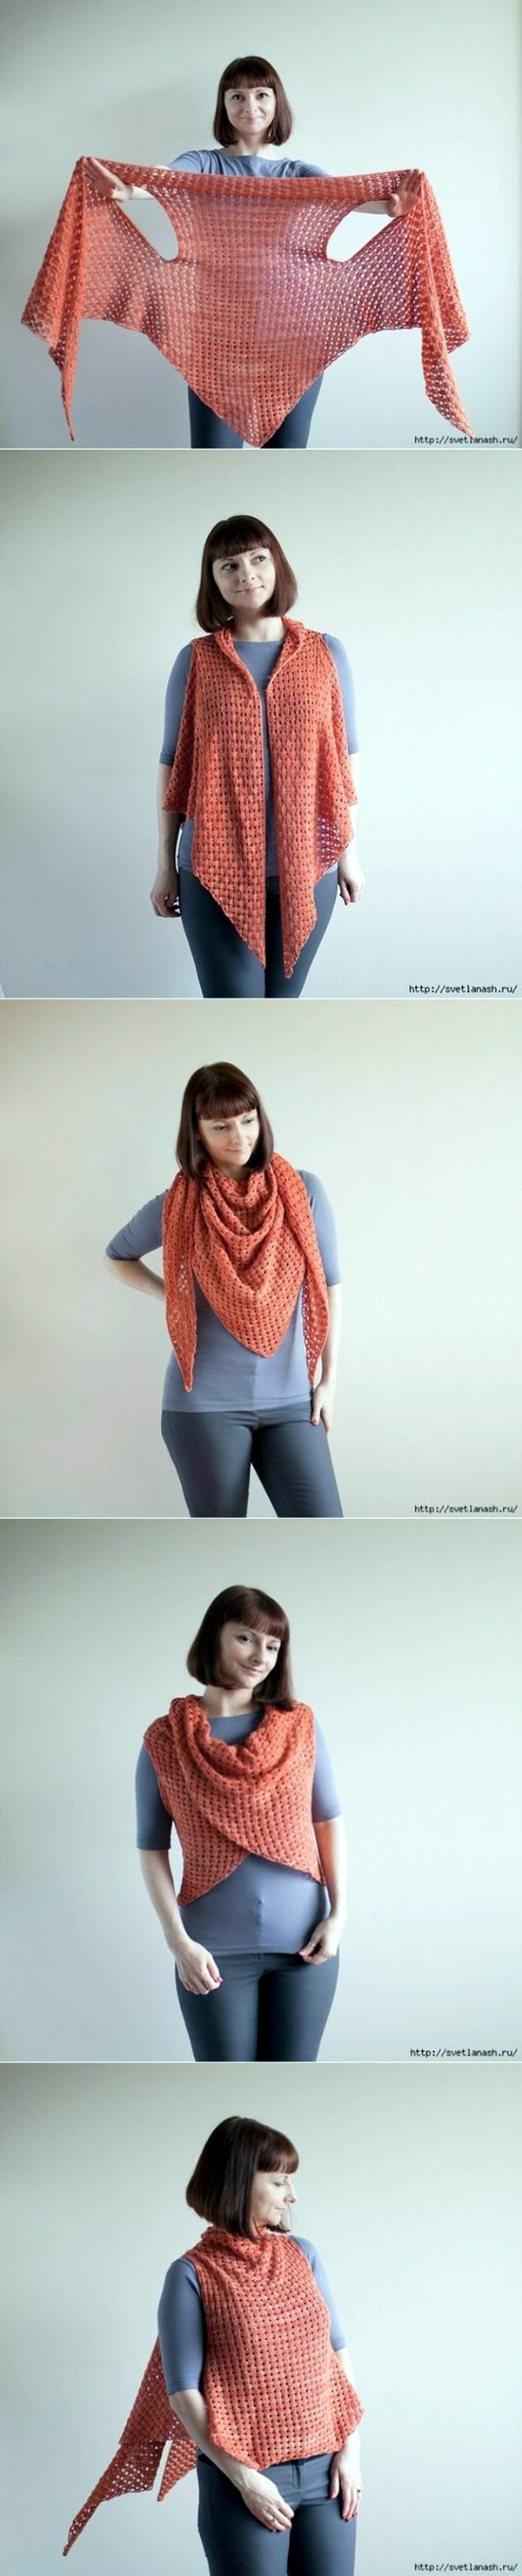 scarf-draping-ideas-11